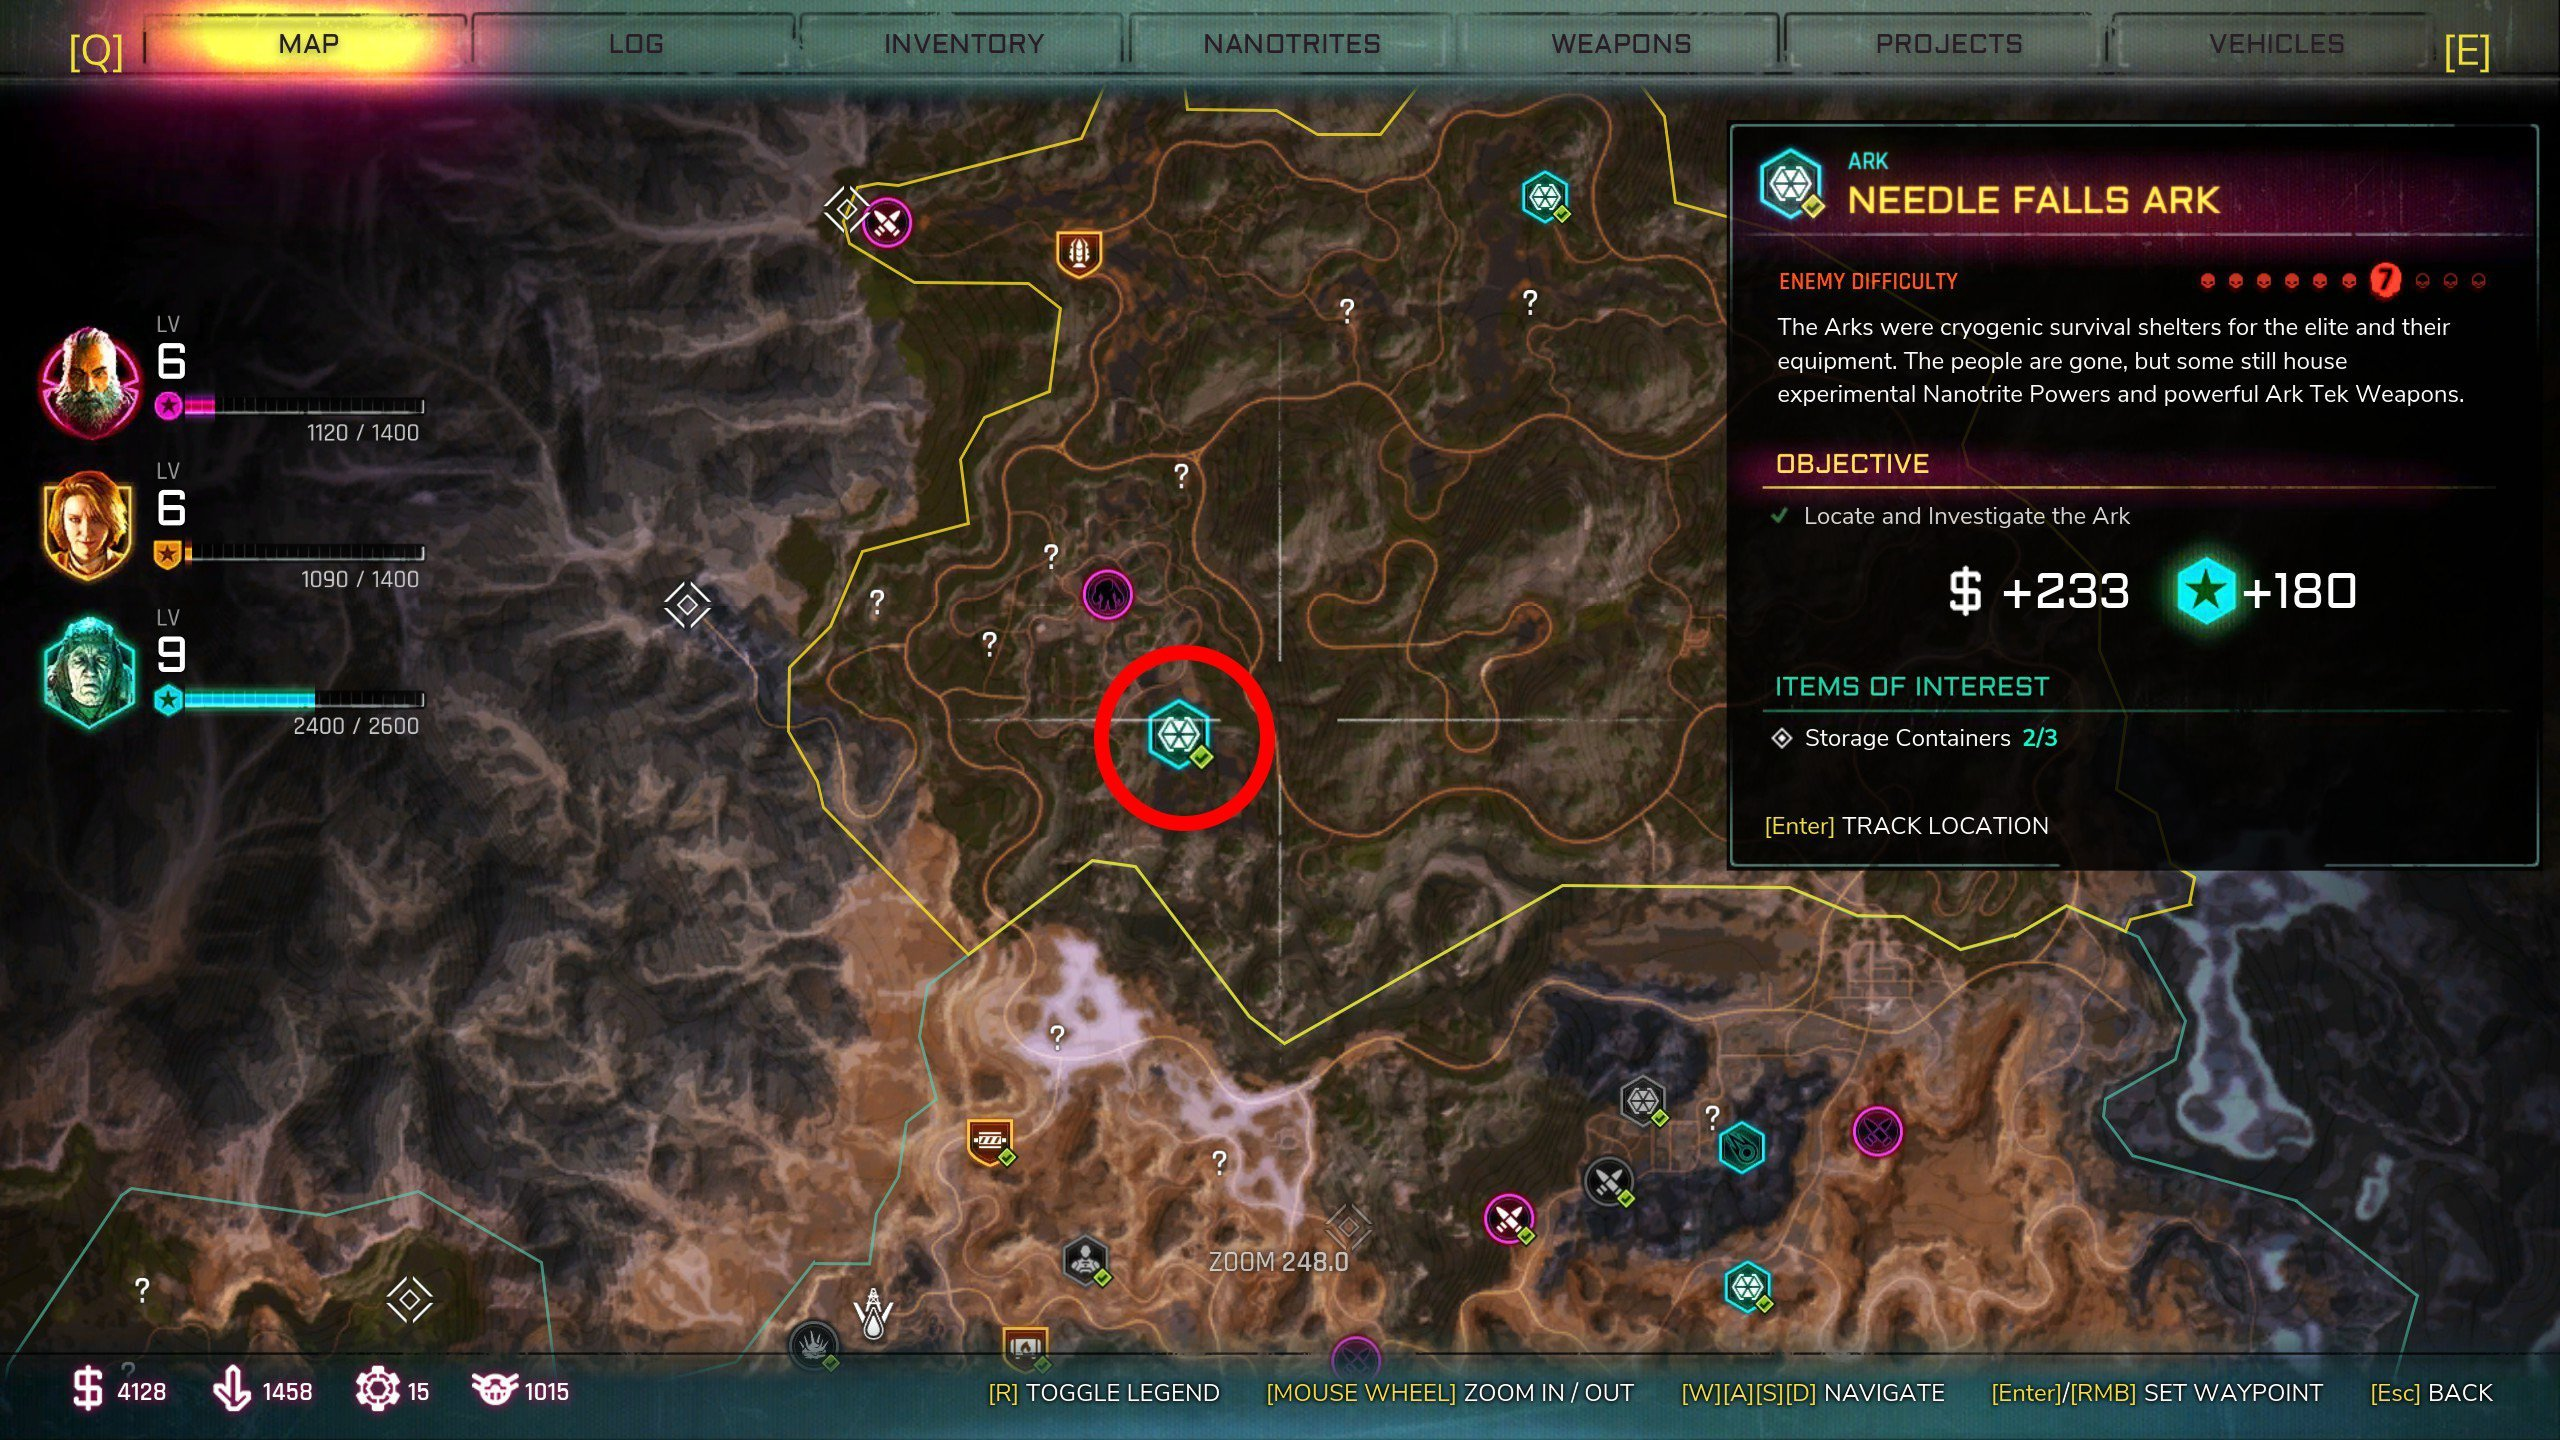 Needle Falls Ark - Where to find Arks in Rage 2